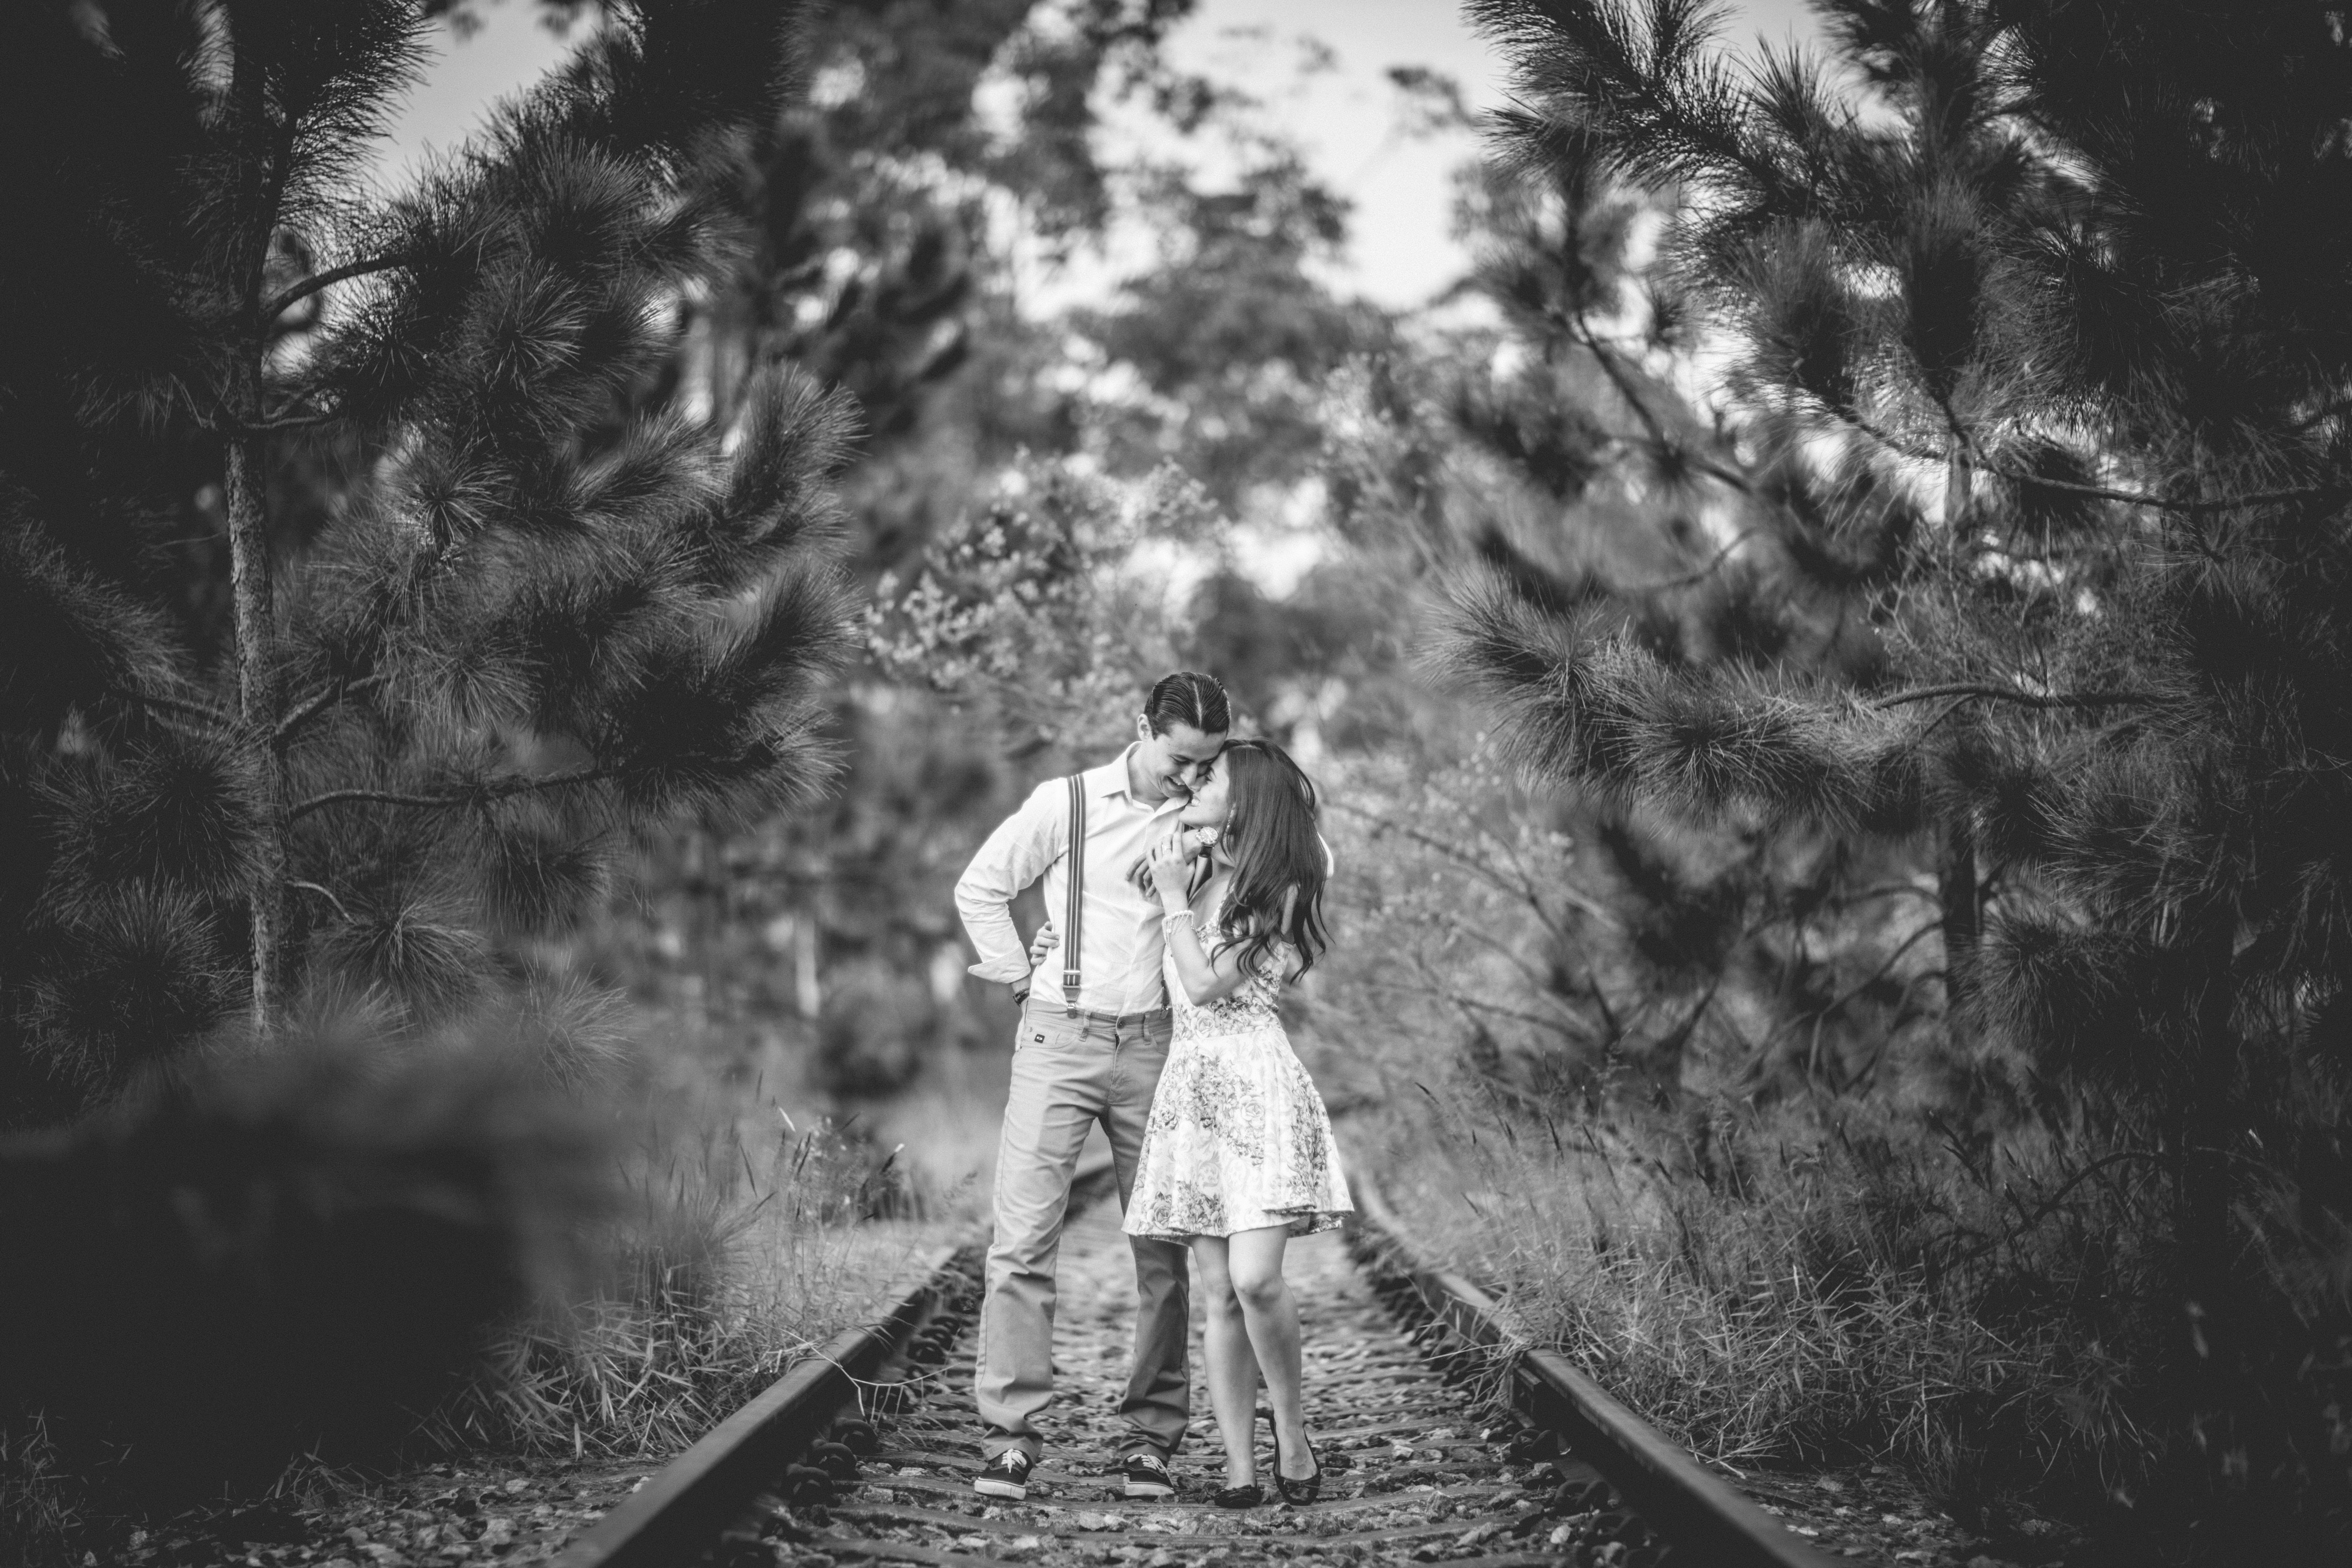 View of Man and Woman, Romantic, Togetherness, Road, Railway, HQ Photo